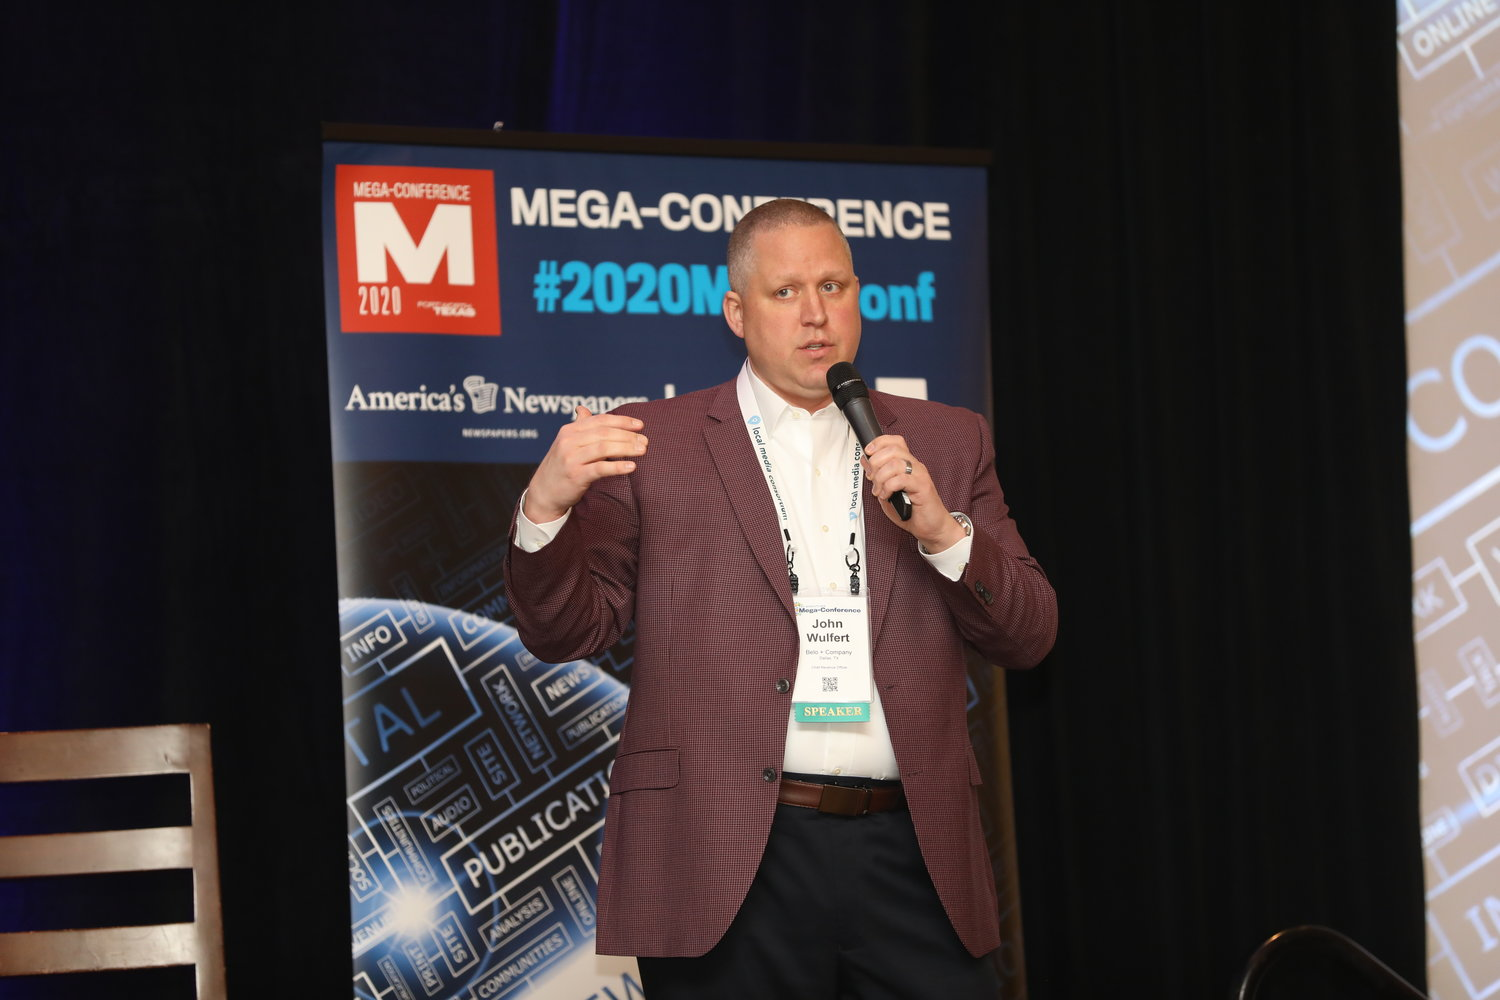 John Wulfert, chief revenue officer of Belo + Company, at the Mega-Conference. (Photo by Bob Booth)